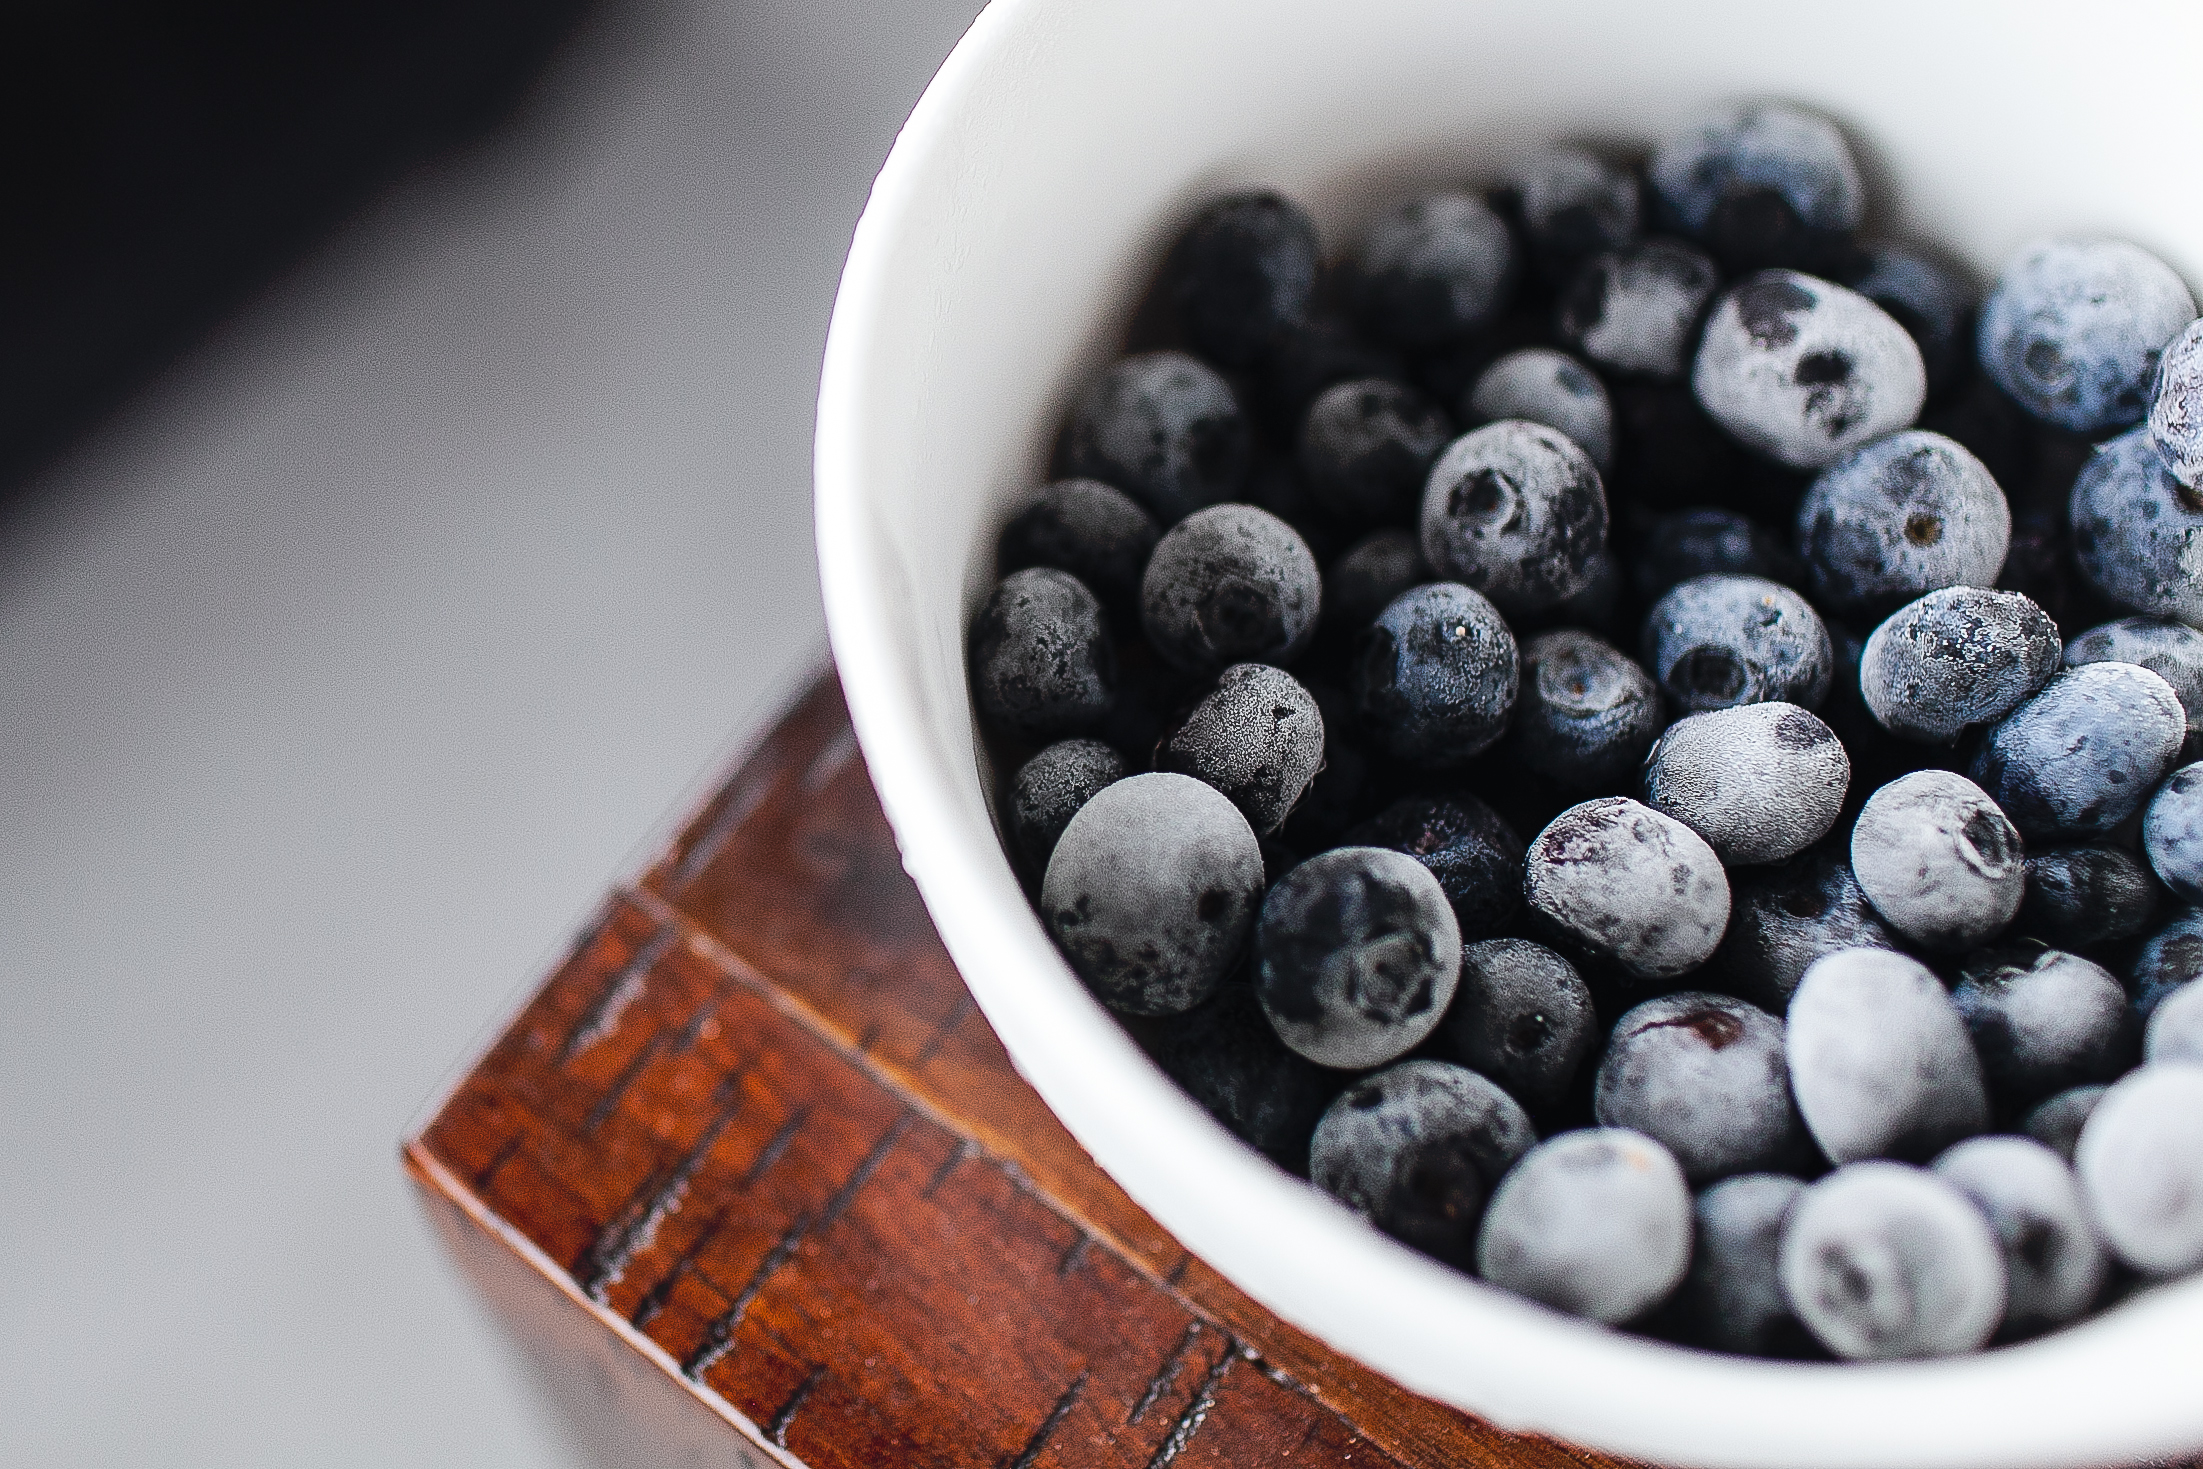 Blueberries Are Delicious - Are They A Breakfast Topping And A Cure for Cancer?